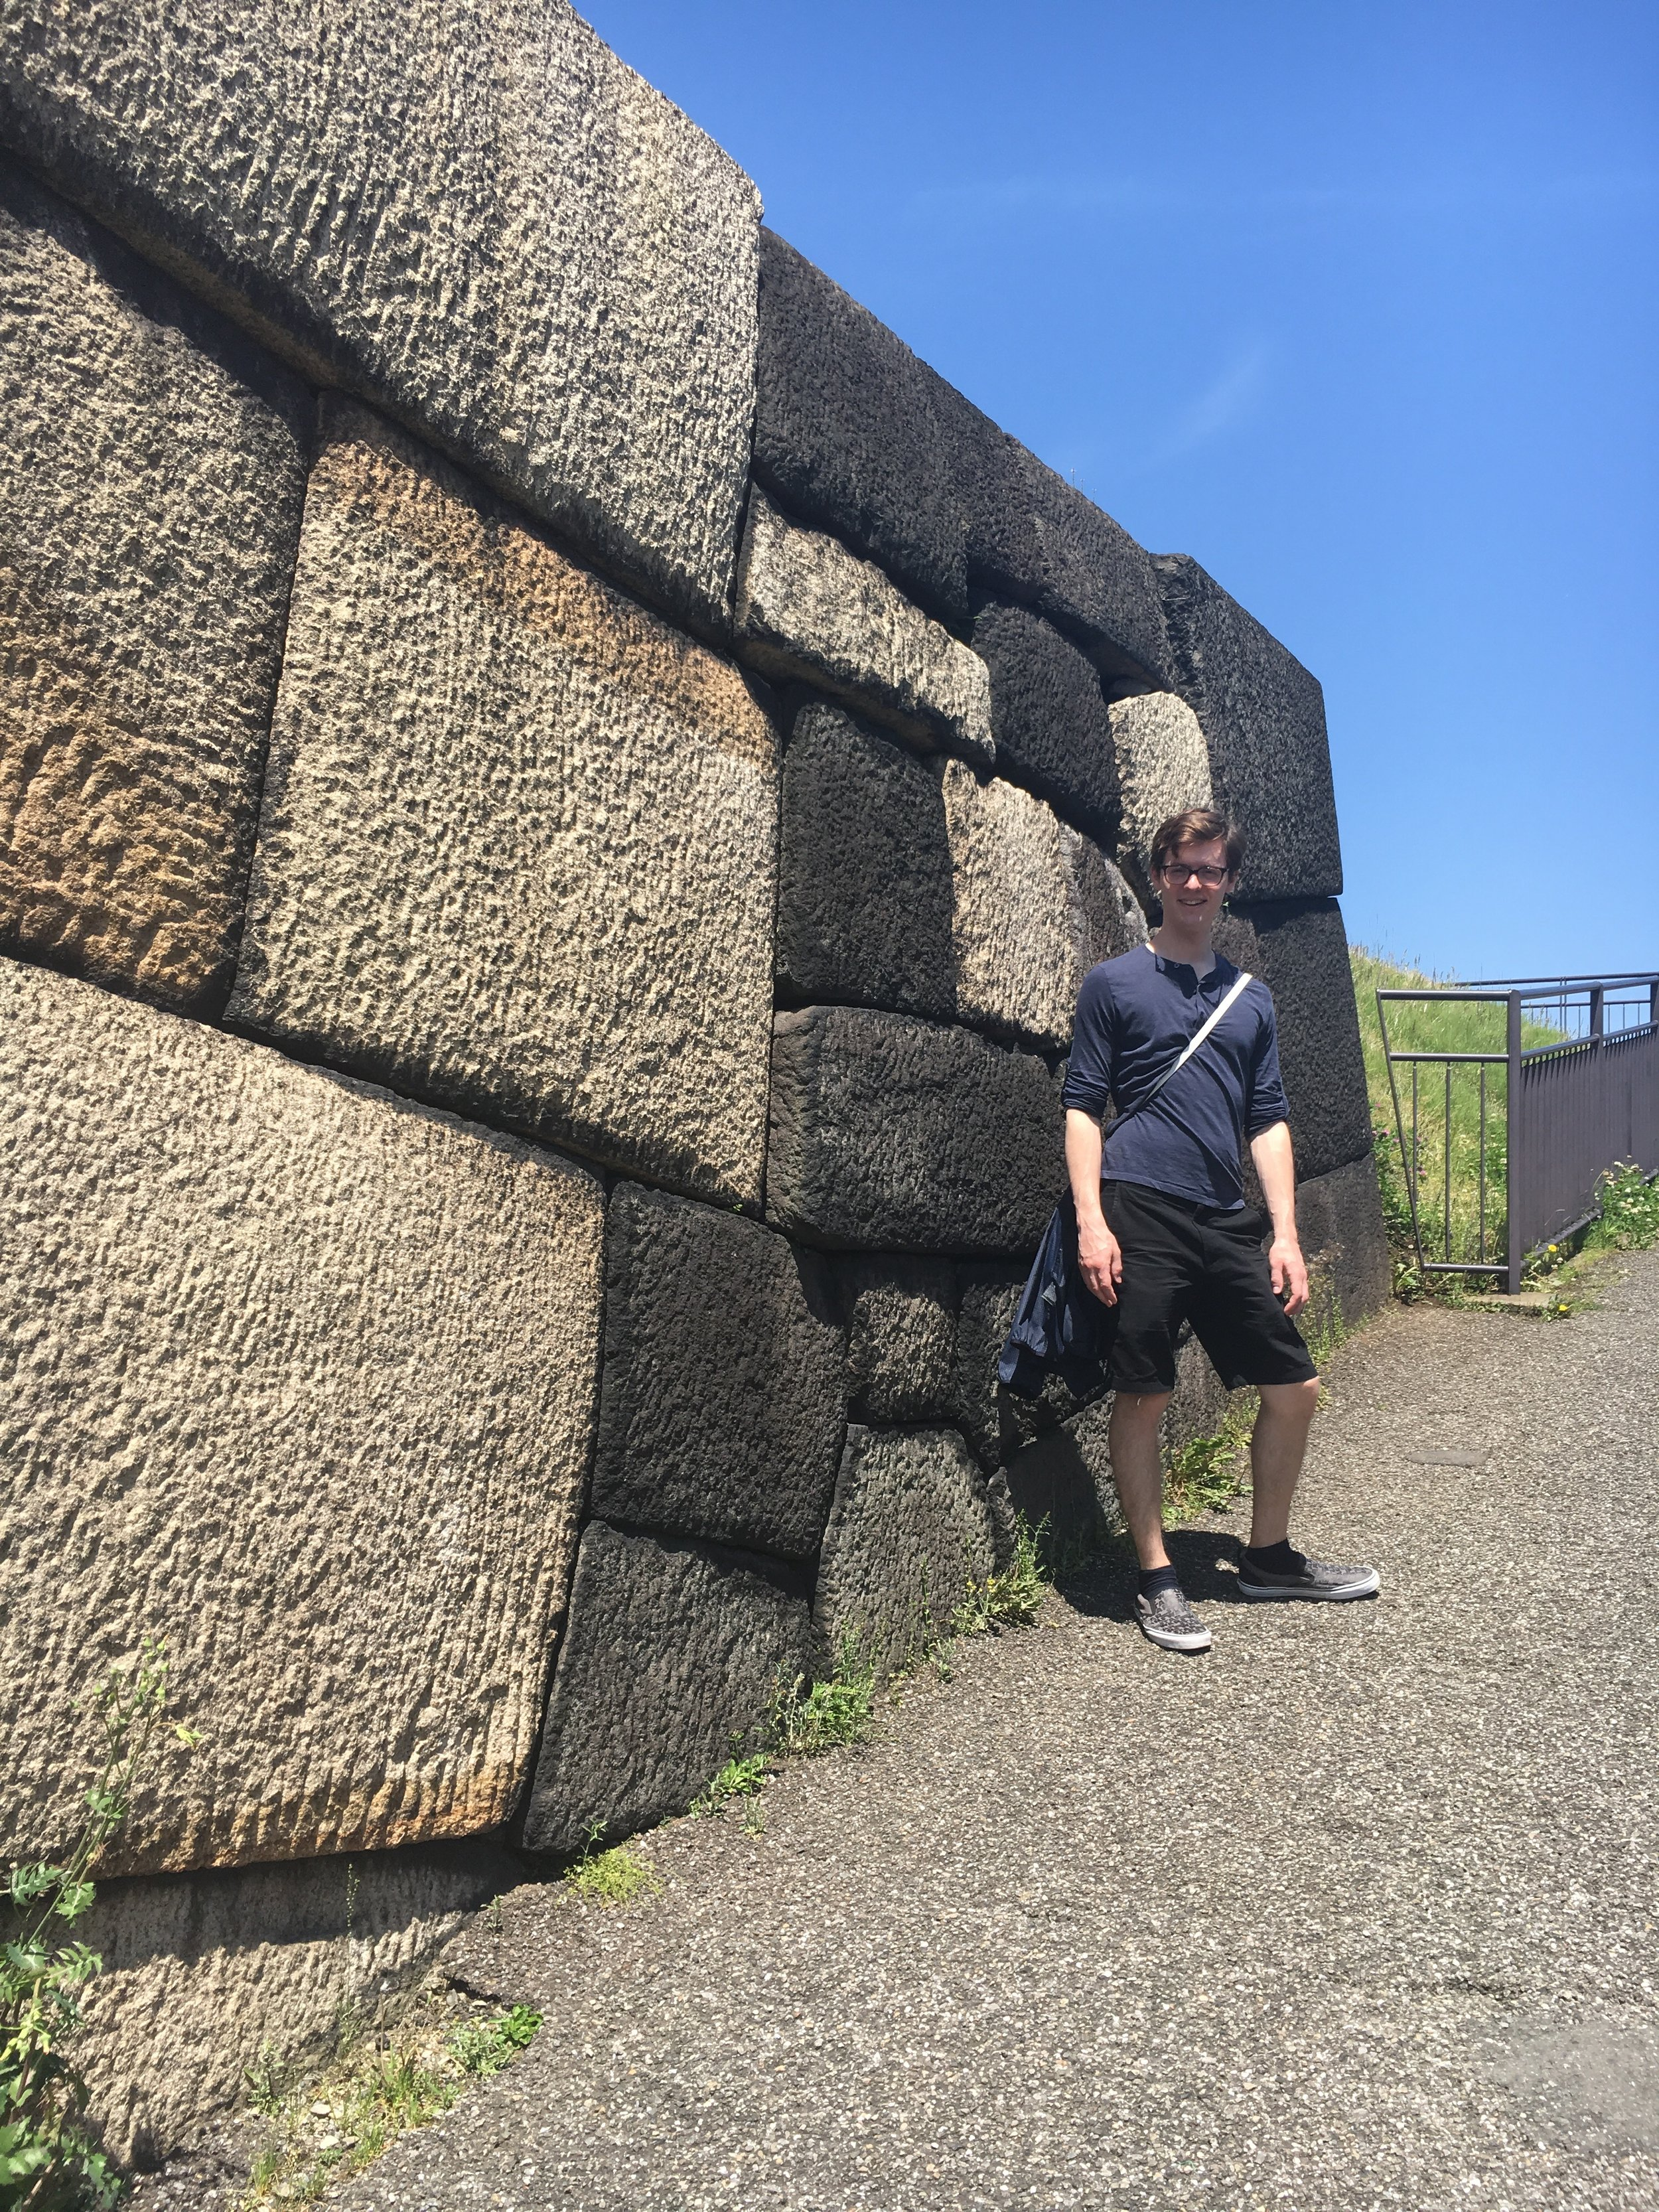 Michael next to one of the walls of the previous donjon.